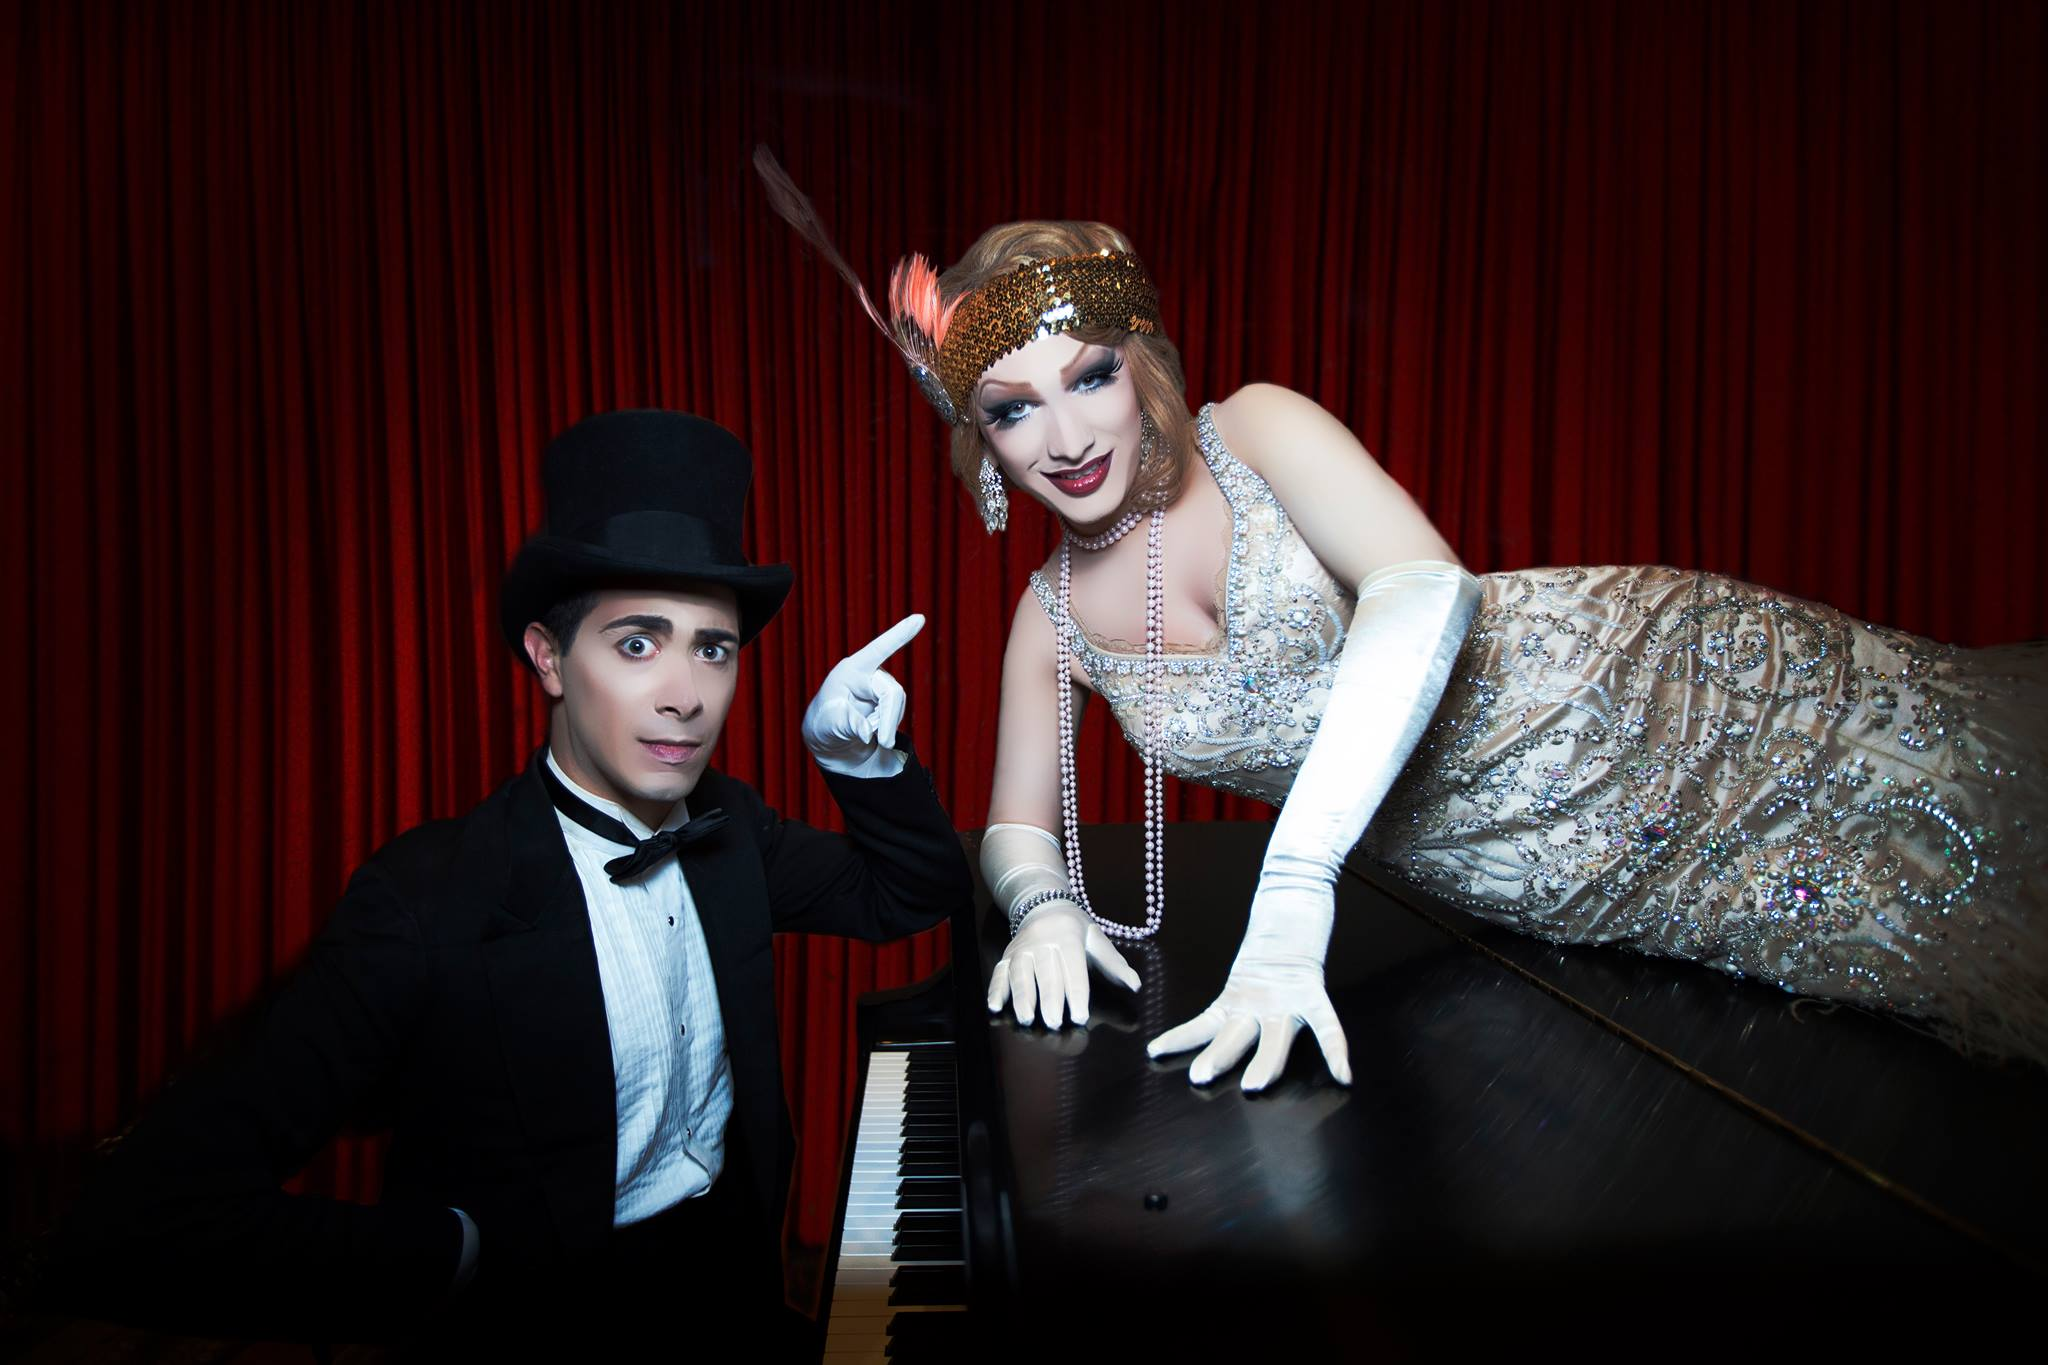 Carla Rossi introduces Jinkx Monsoon in her first PDX show since winning RuPaul's Drag Race three years ago!